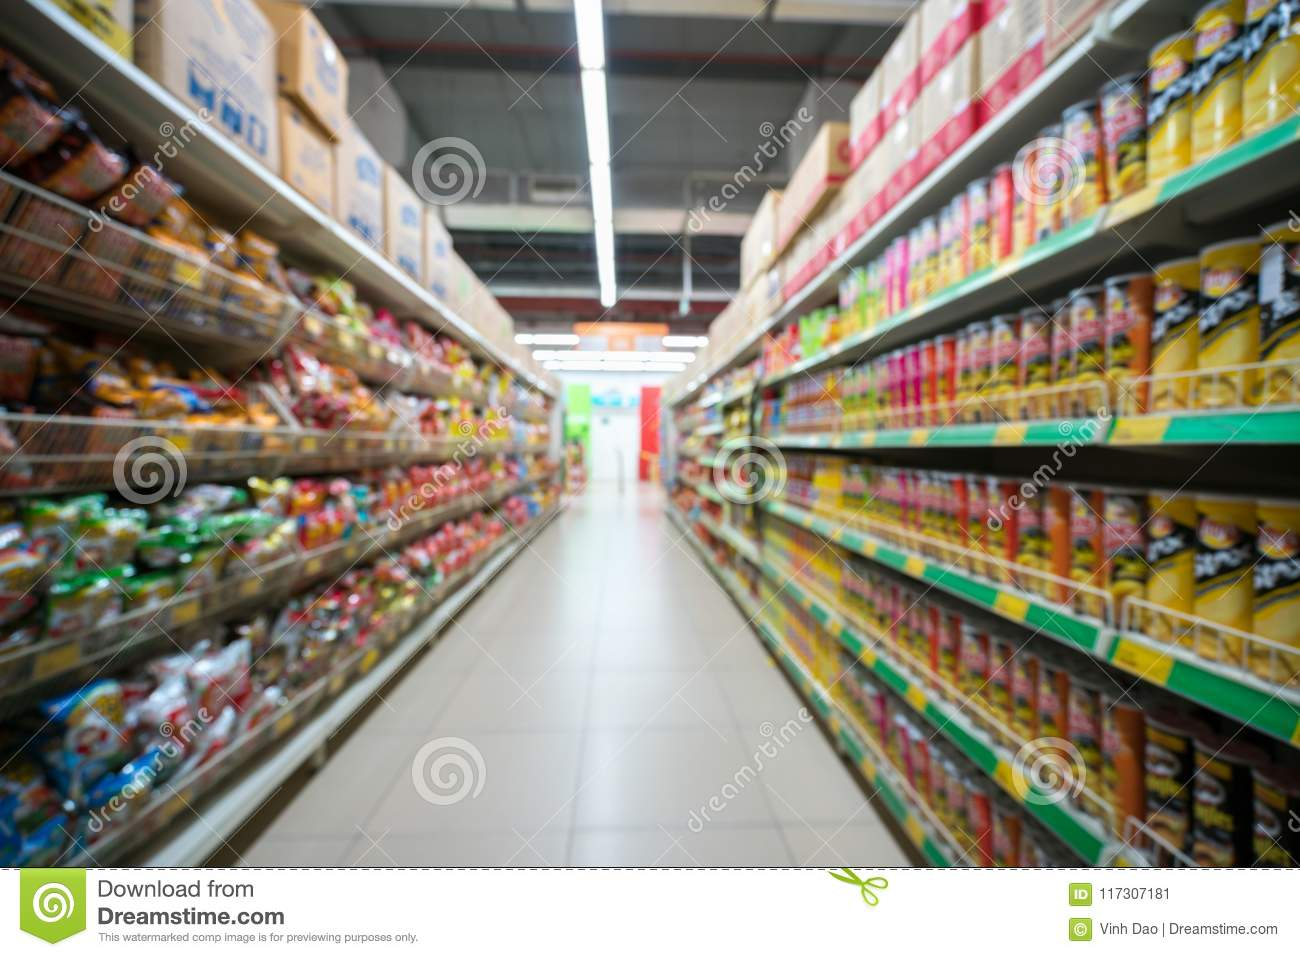 Supermarket Blurred Background With Colorful Shelves And